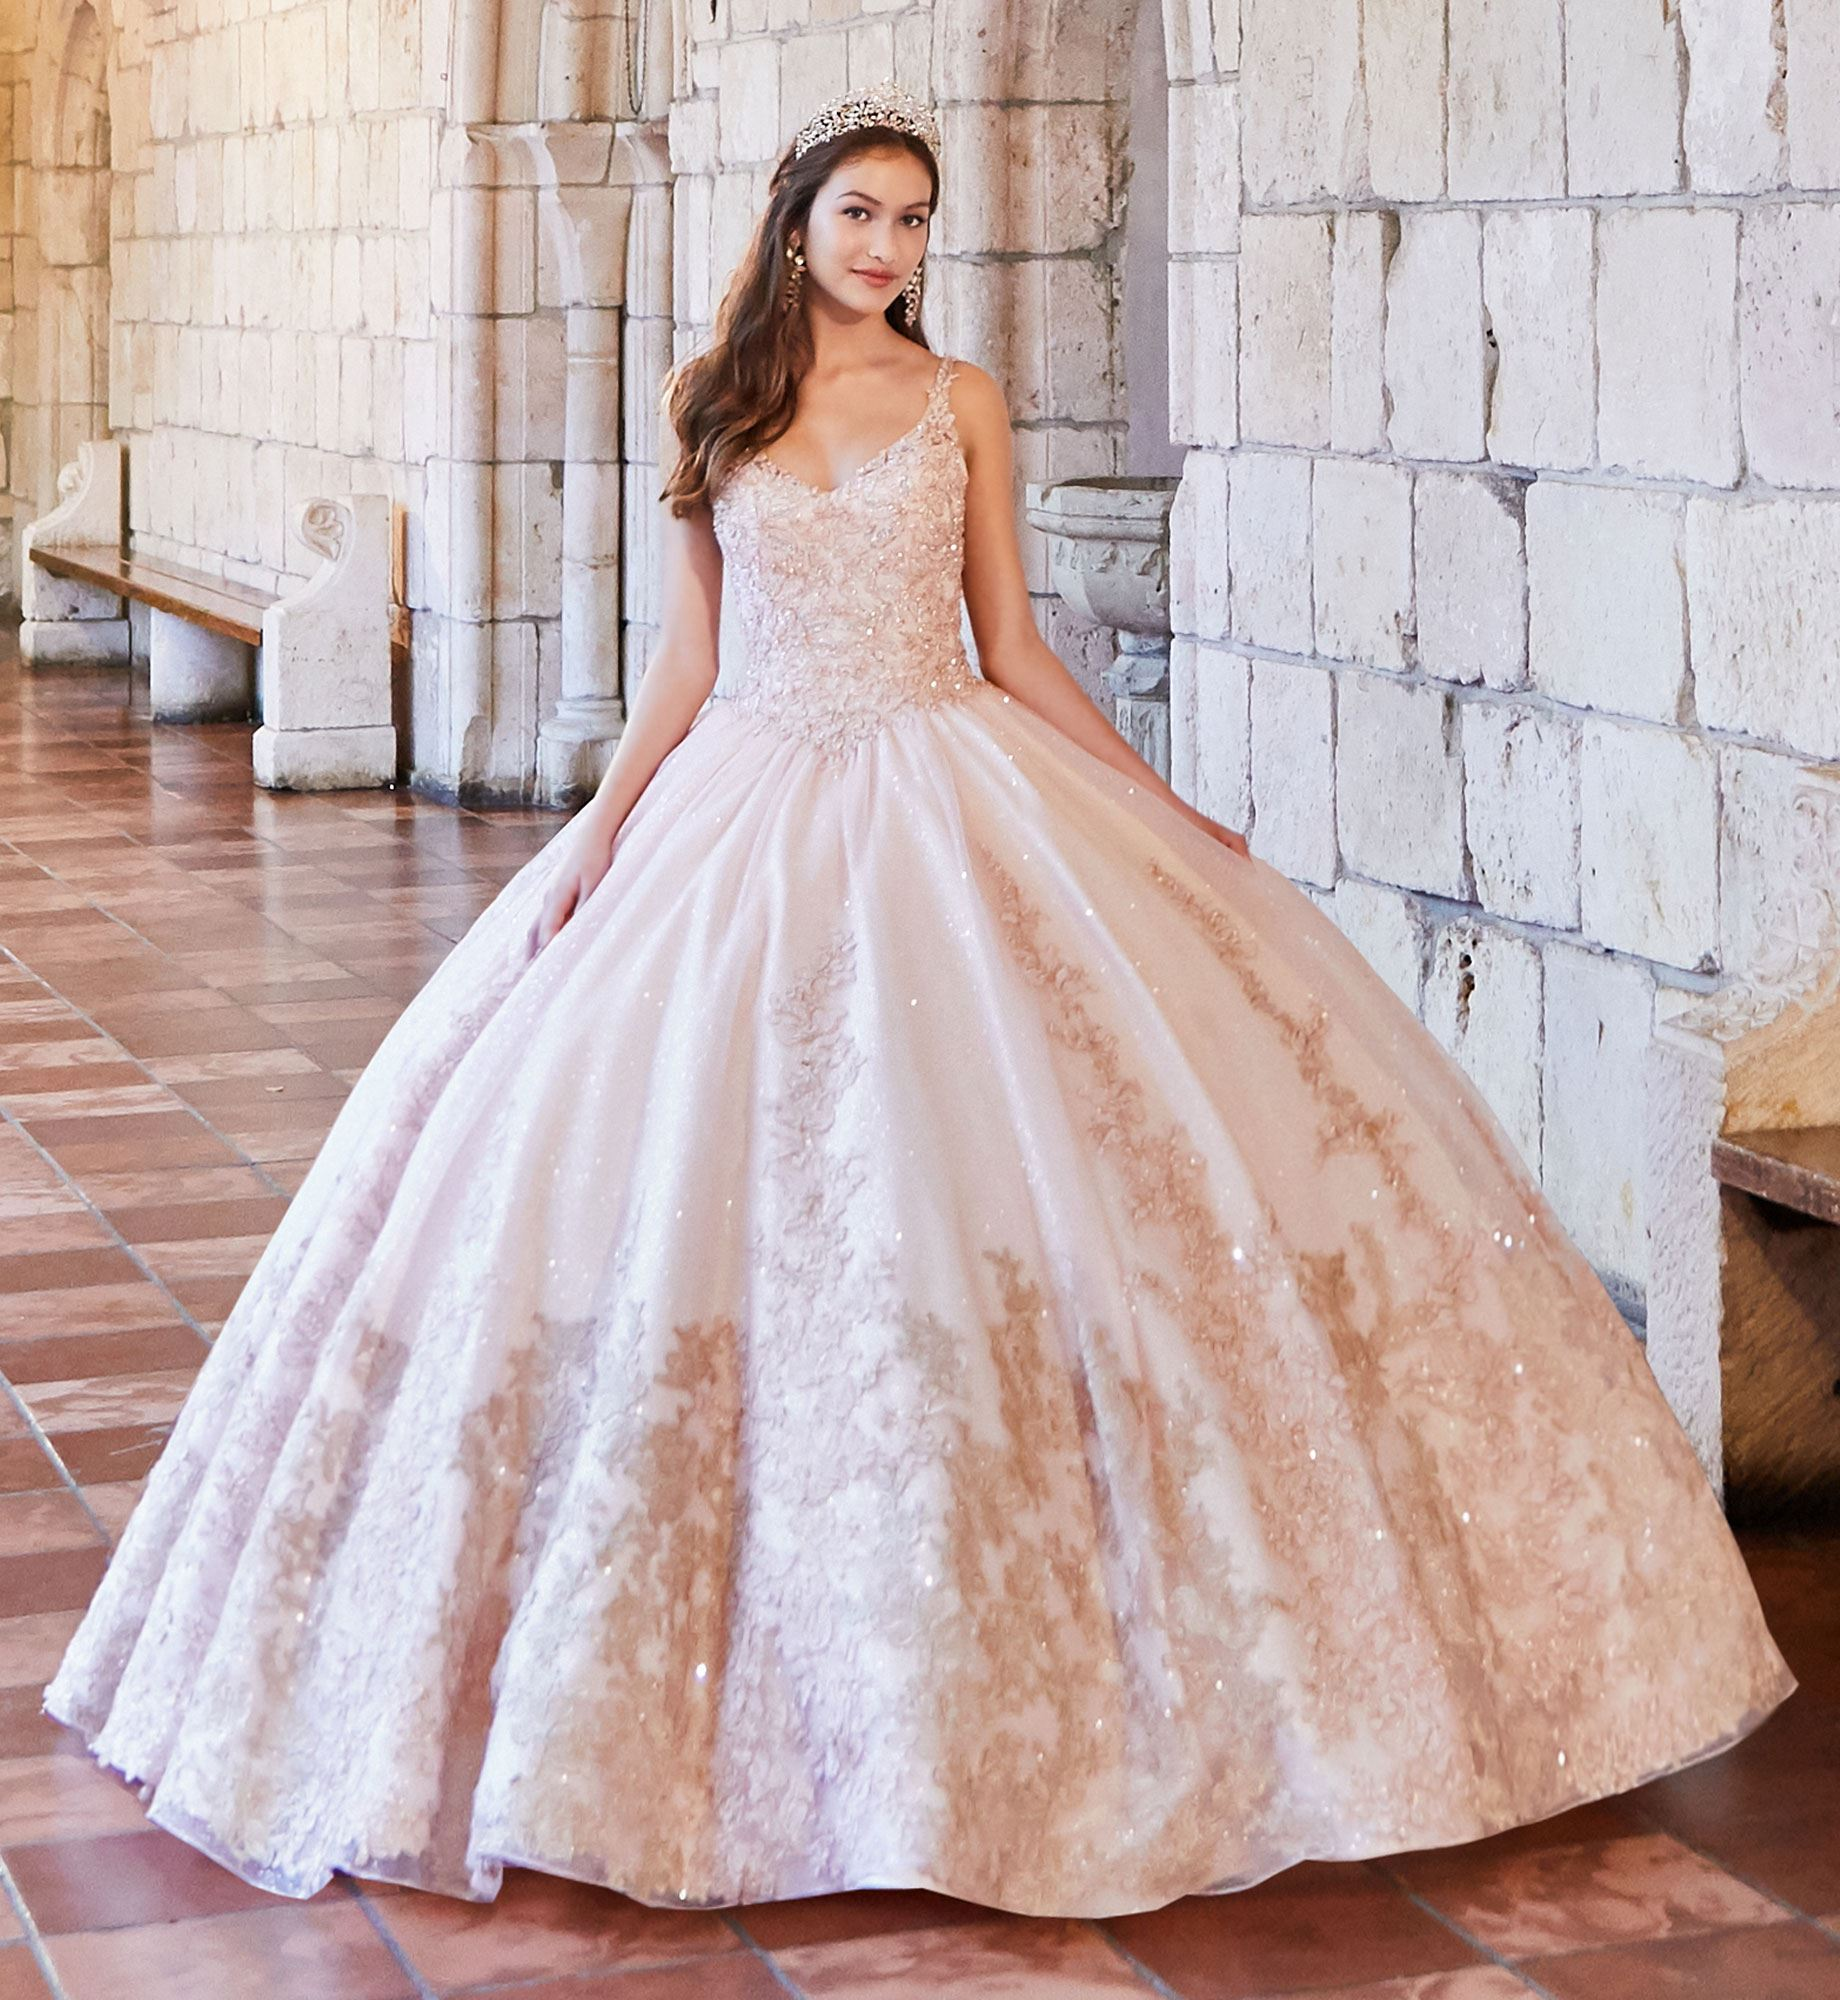 Brunette model in pink and gold quinceañera dress